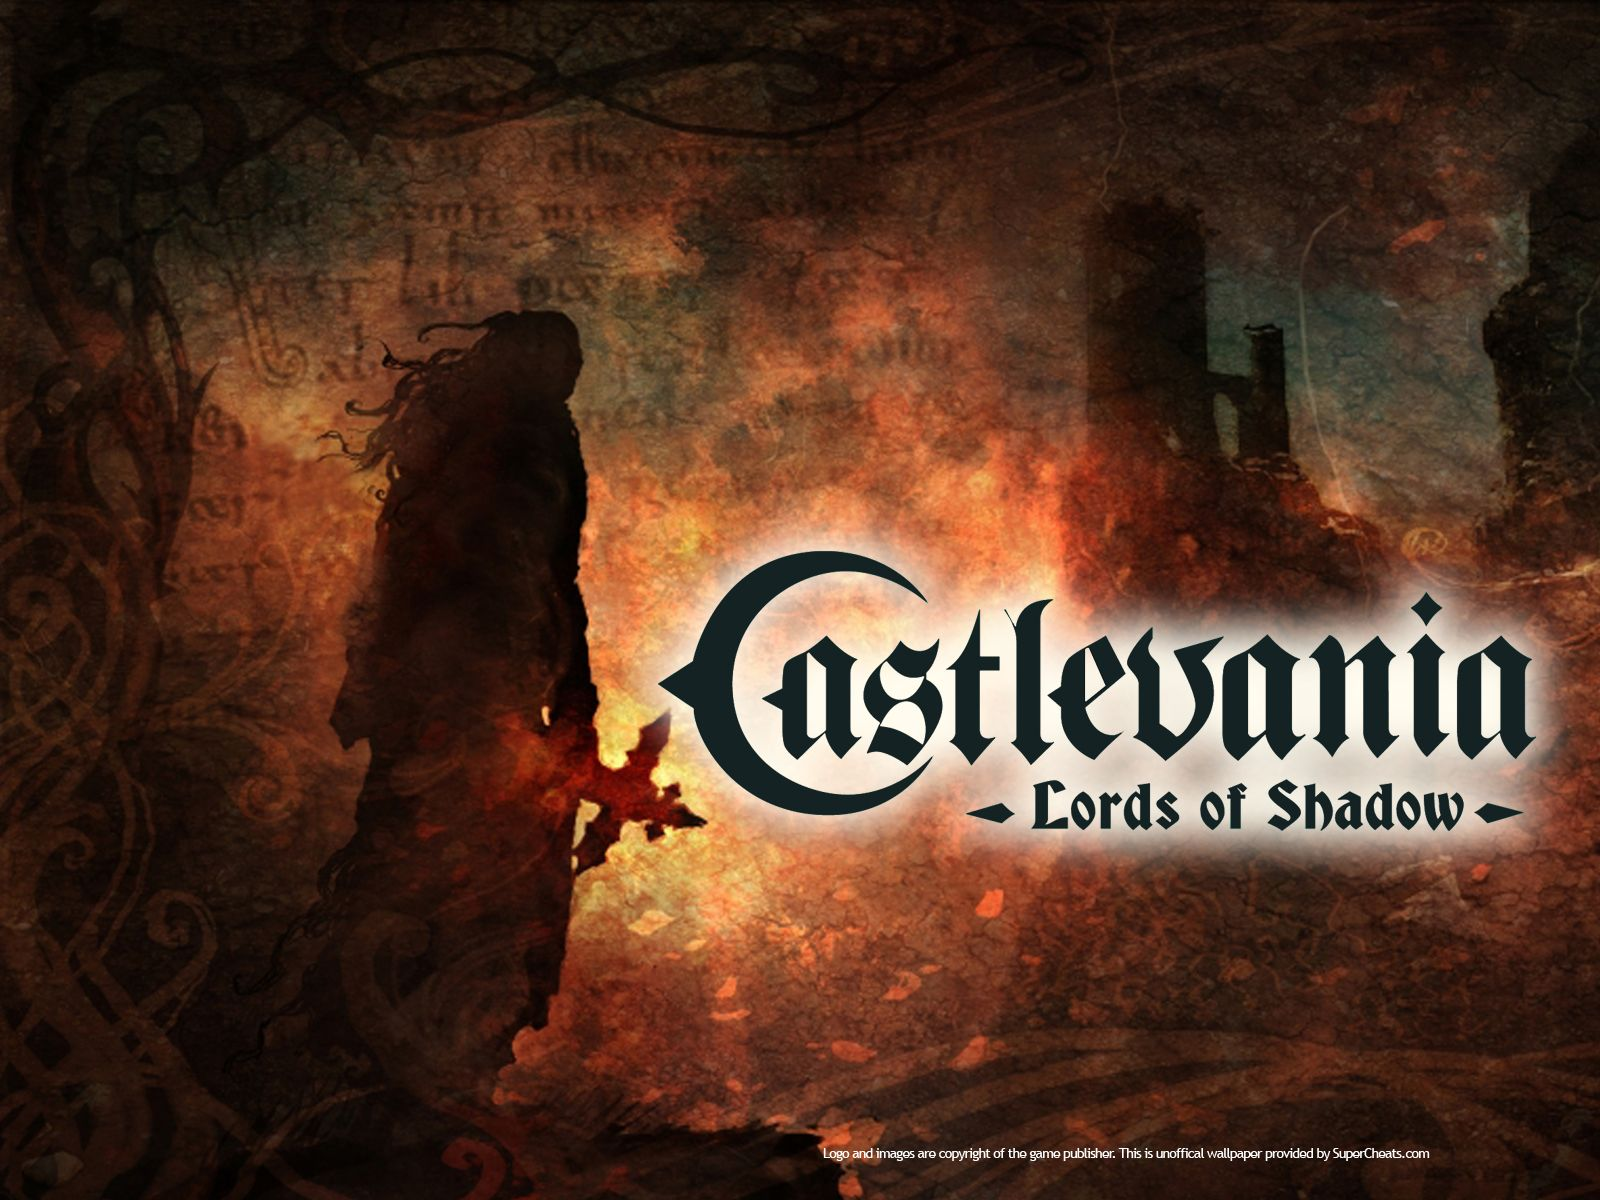 Castlevania Lords of Shadow Castlevania lord of shadow